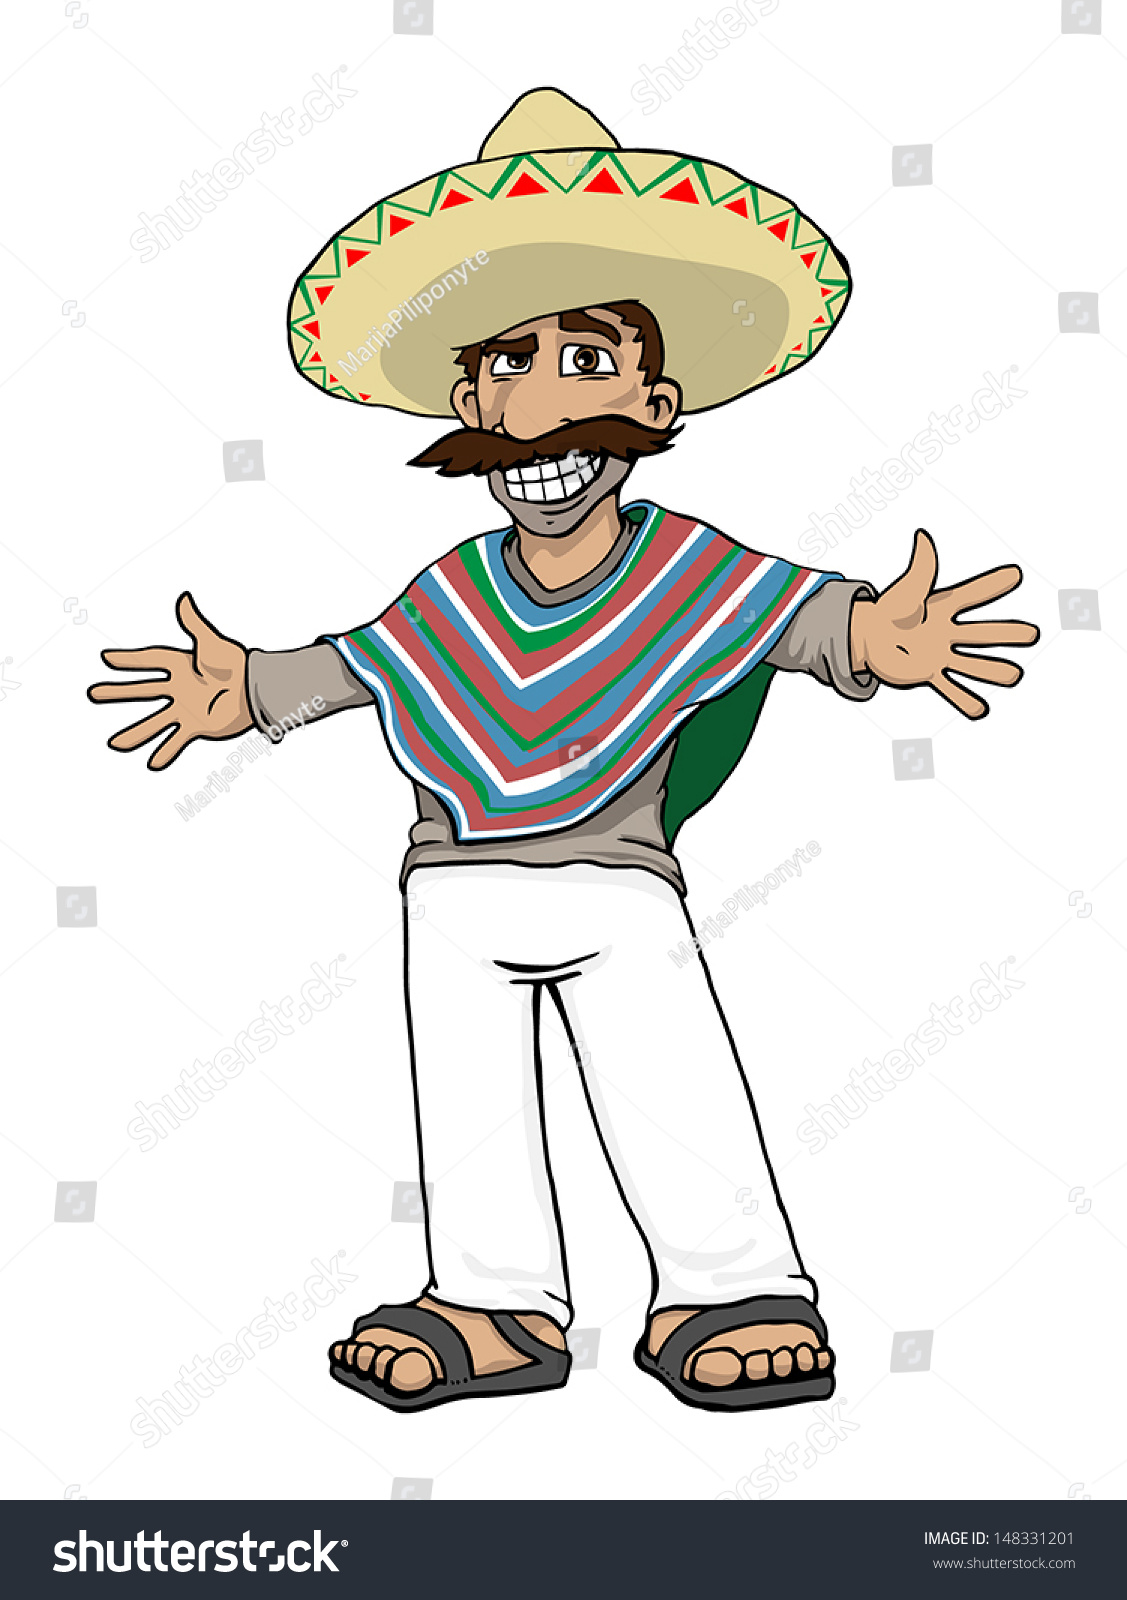 Cartoon Characters Mexican : Mexican cartoon character vector illustration stock